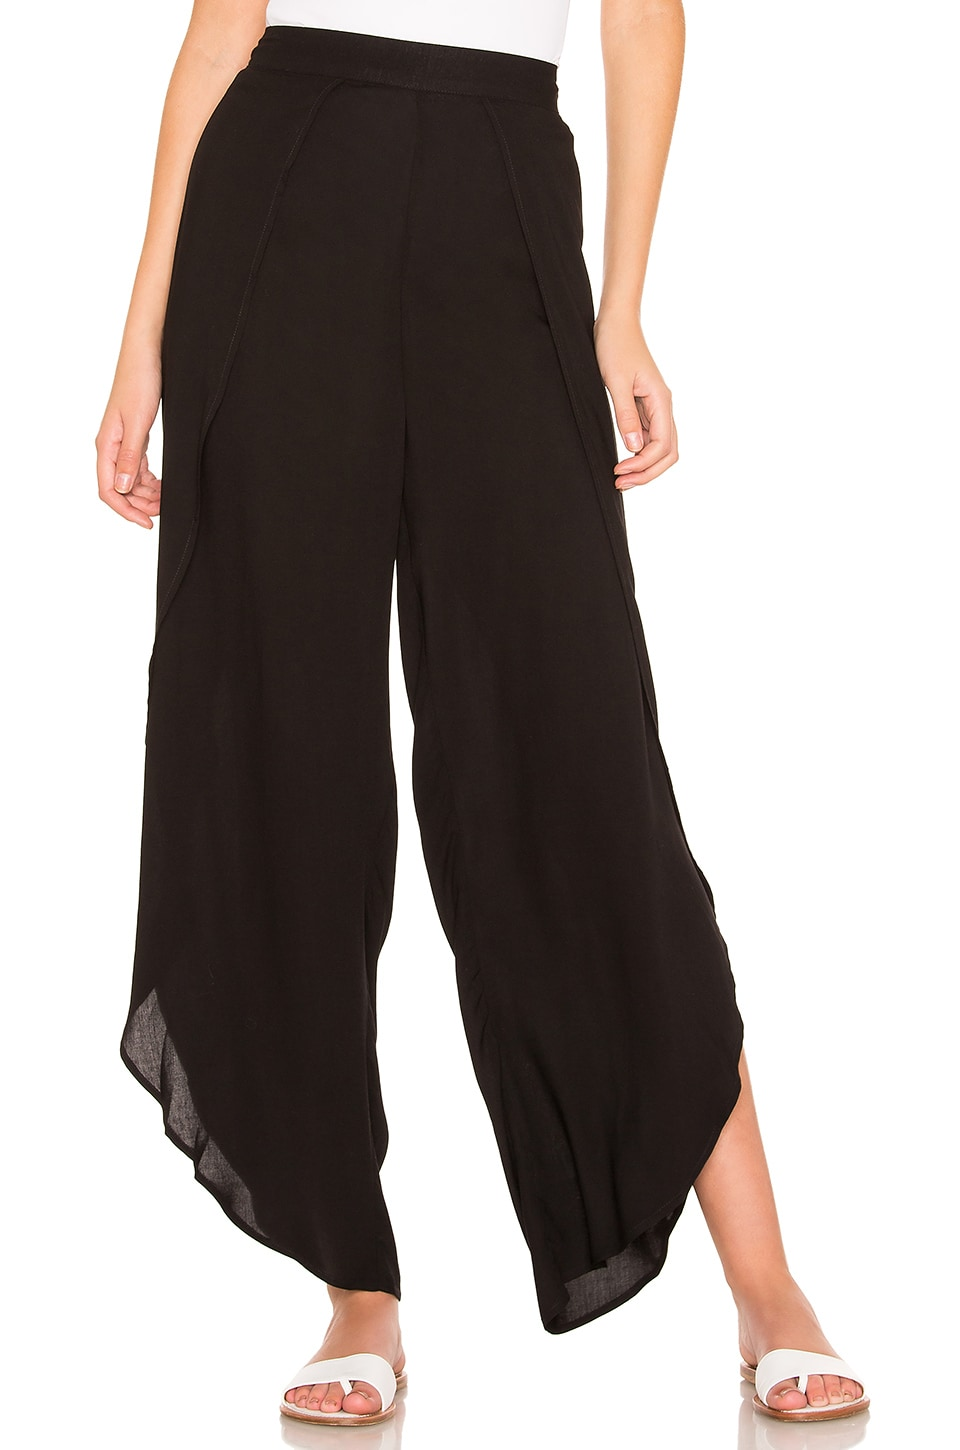 TAVIK Swimwear Luna Pant in Black